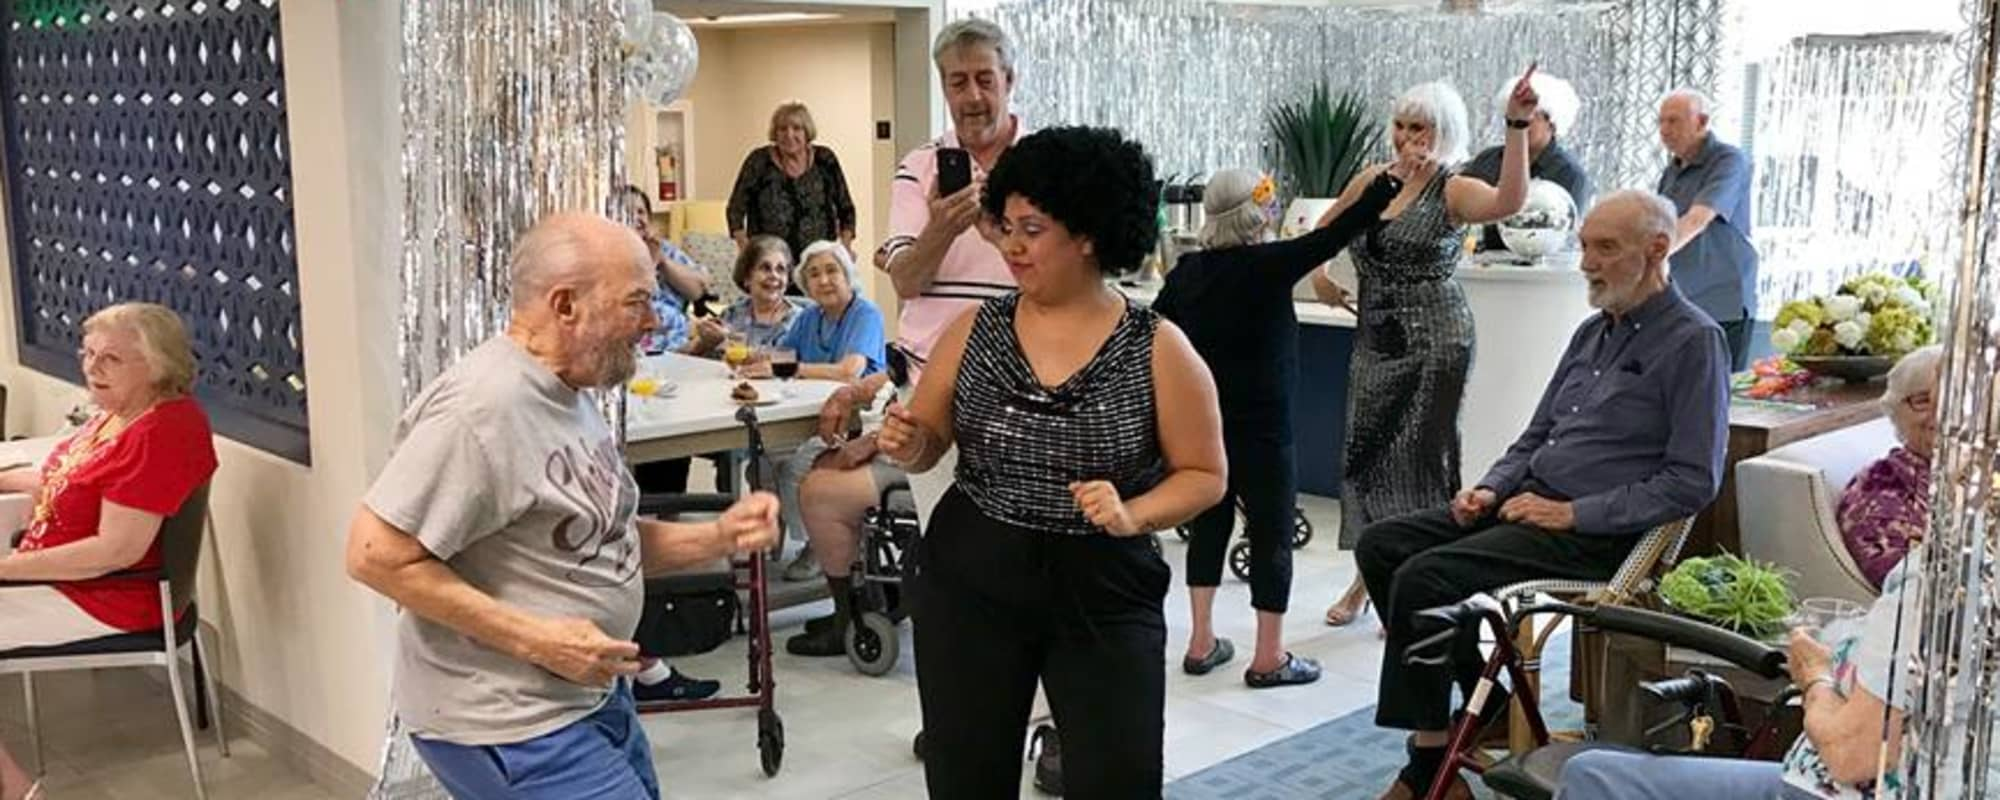 Residents celebrate and dance together at Fairview Commons